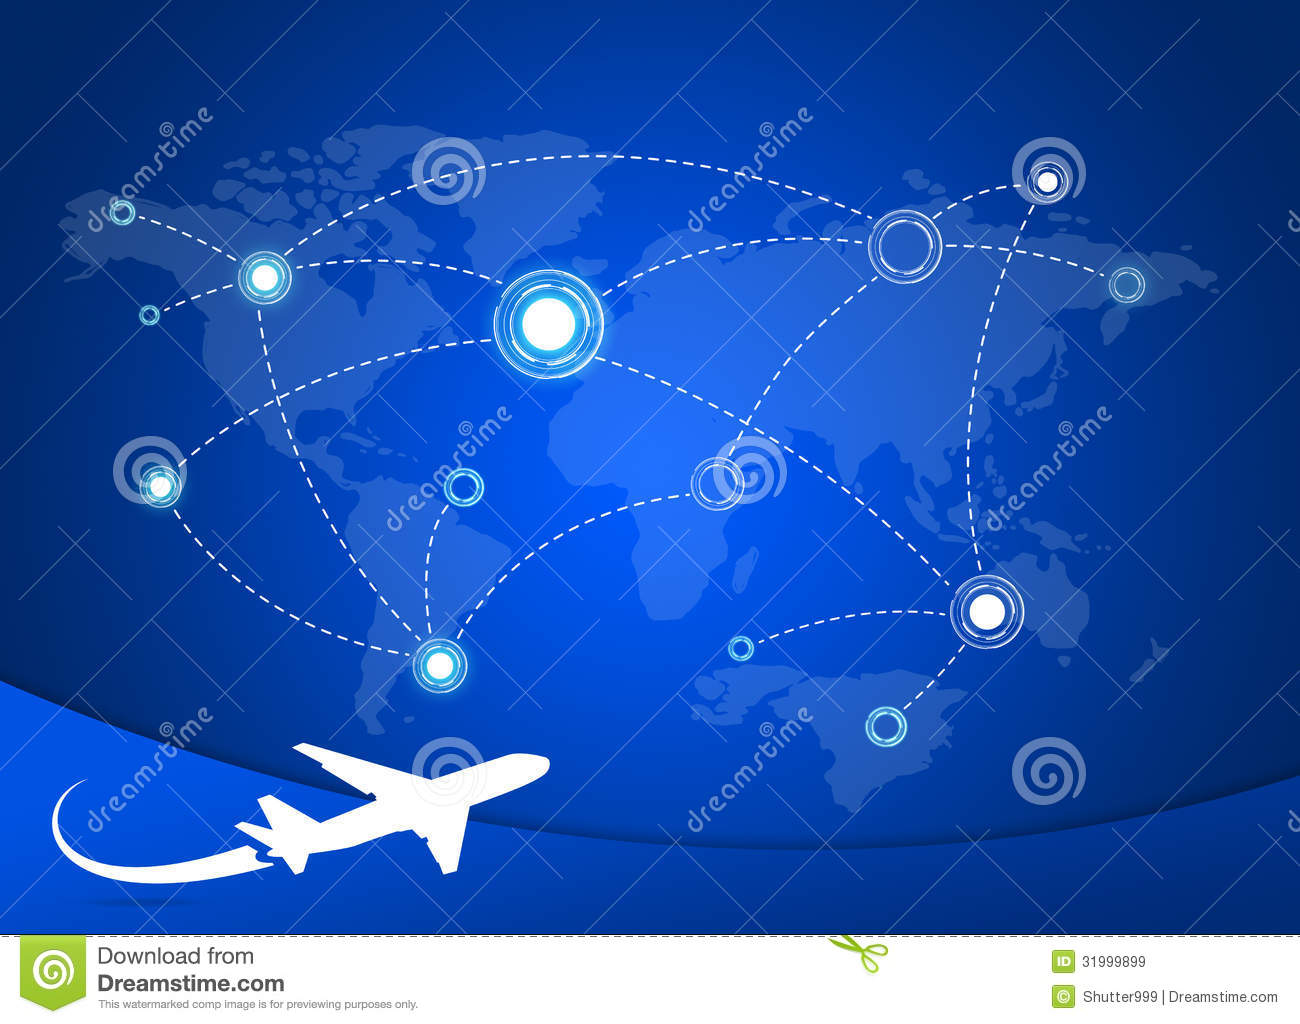 7 Strategies to Help Build The Perfect Aviation Marketing Plan